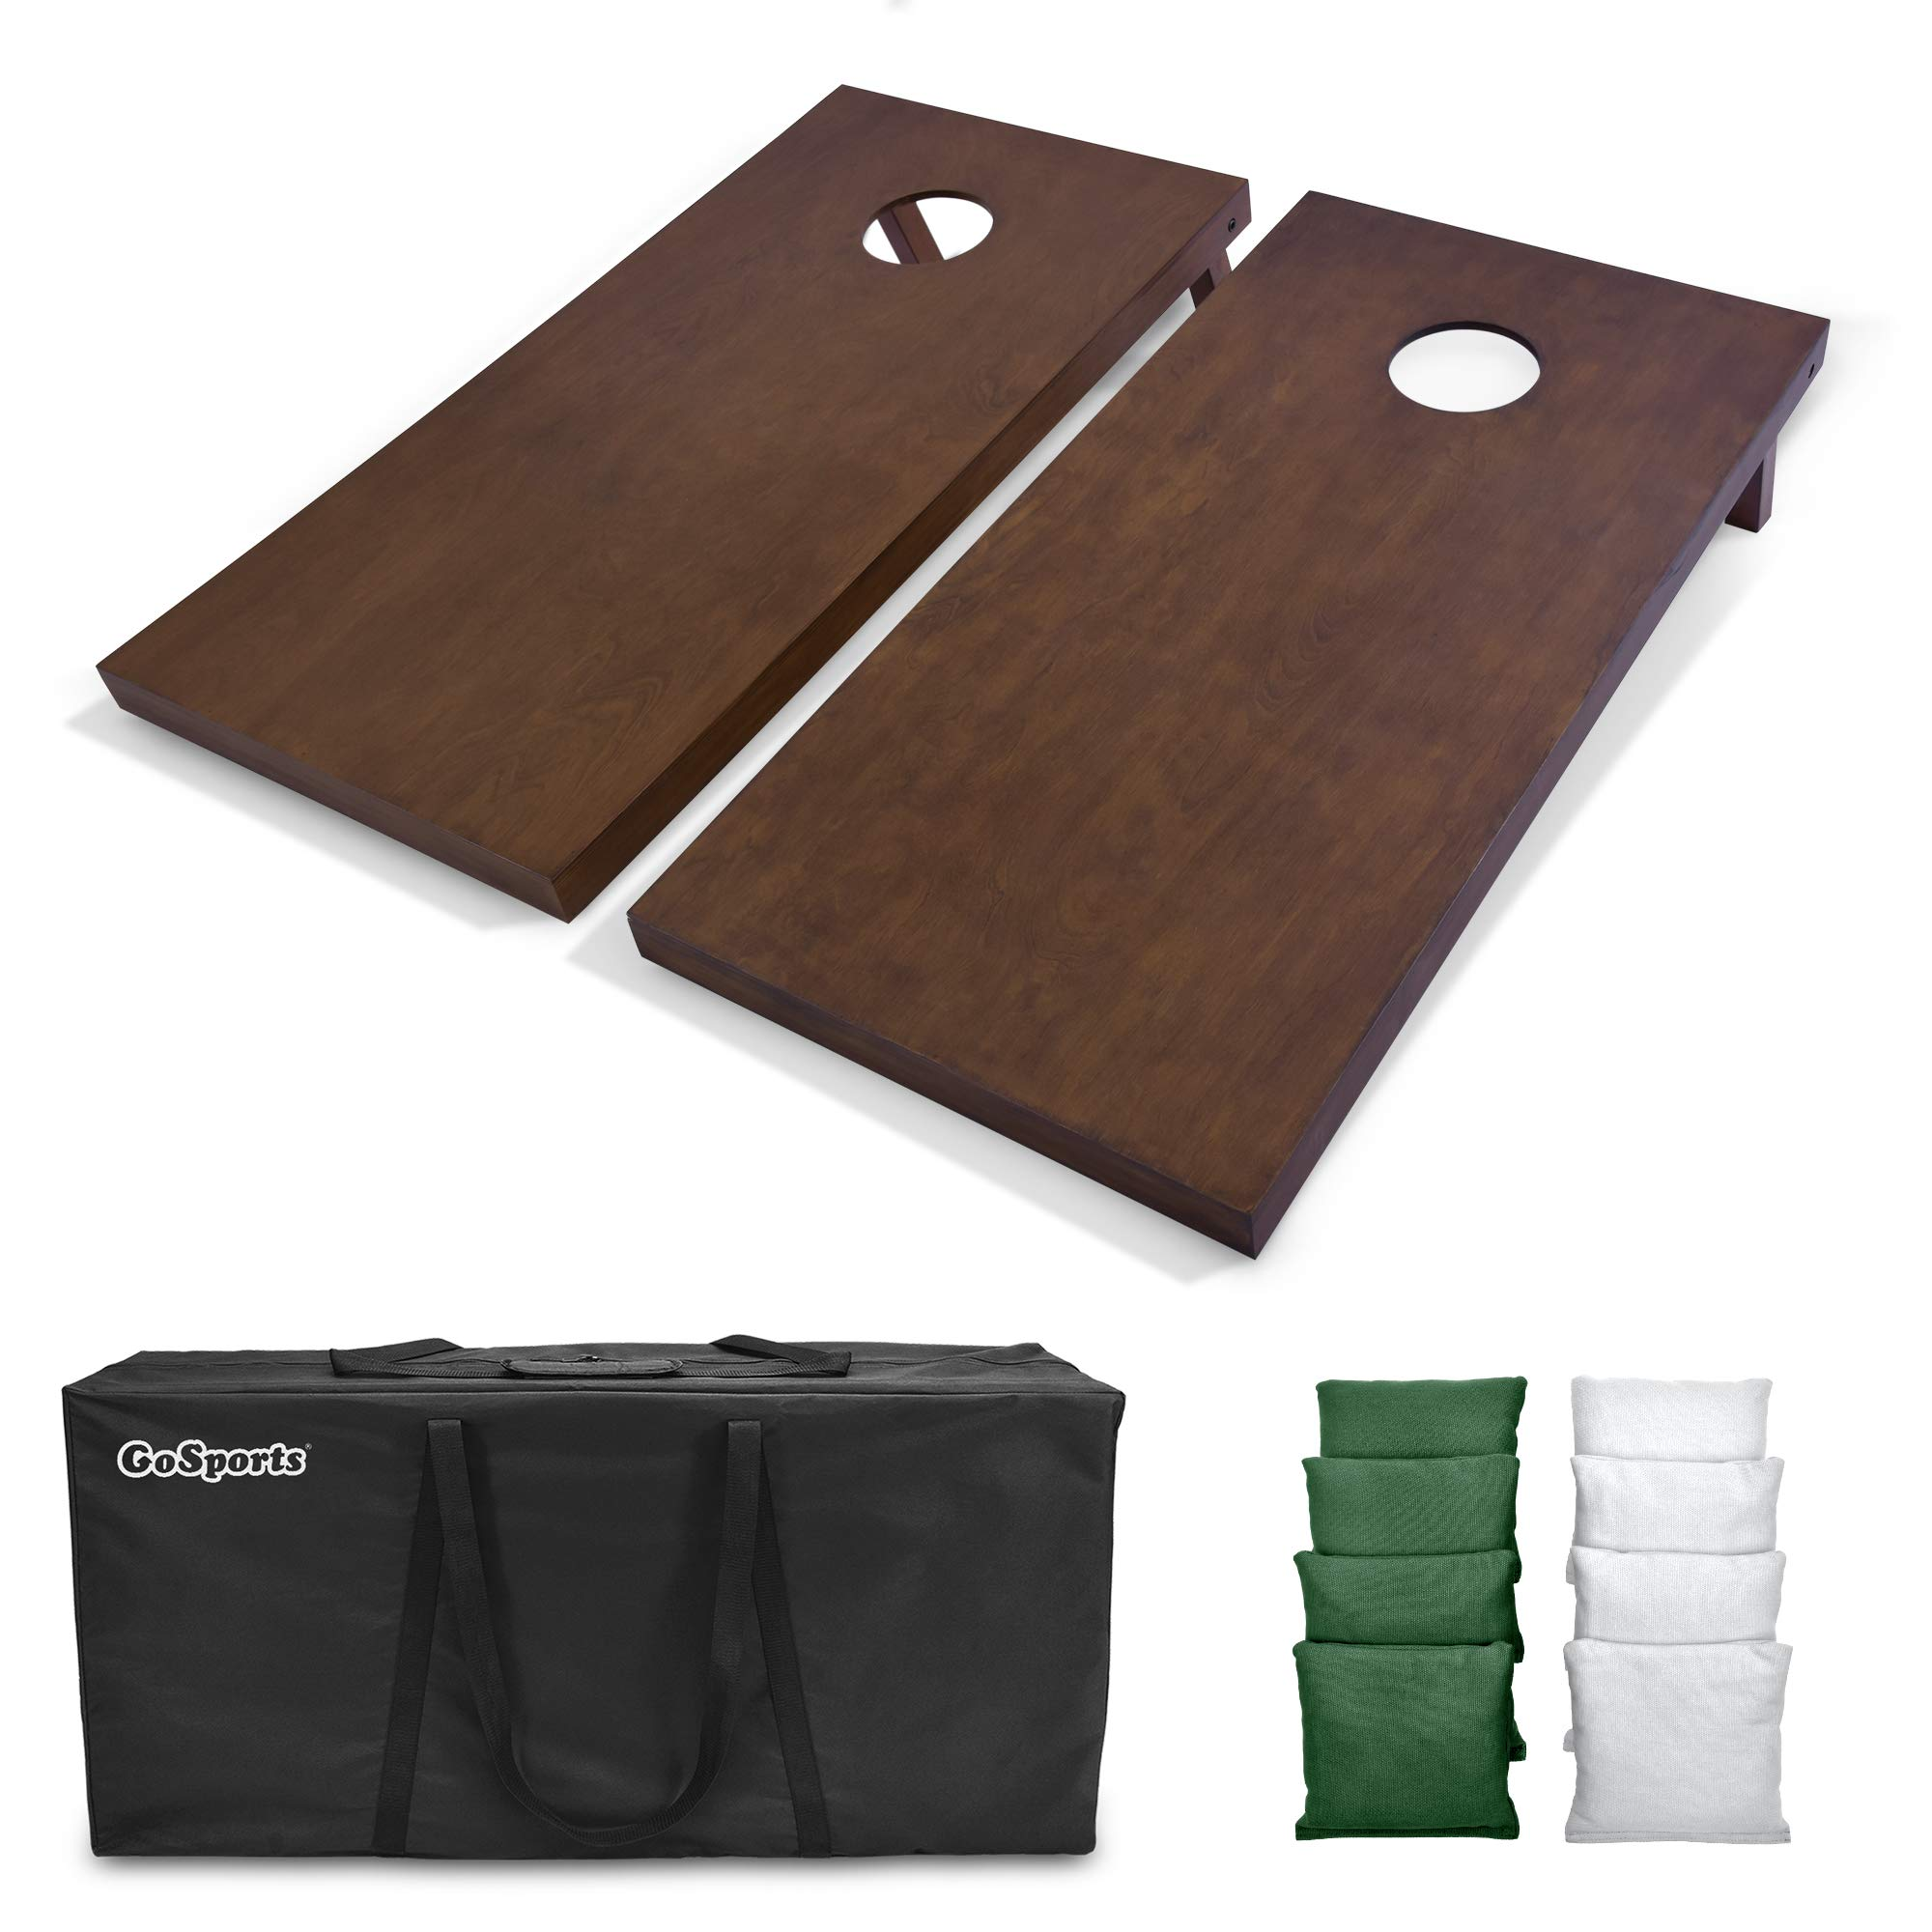 GoSports 4'x2' Regulation Size Wooden Cornhole Boards Set with Dark Brown Varnish   Includes Carrying Case and Bean Bags (Choose Your Colors) Over 100 Color Combinations by GoSports